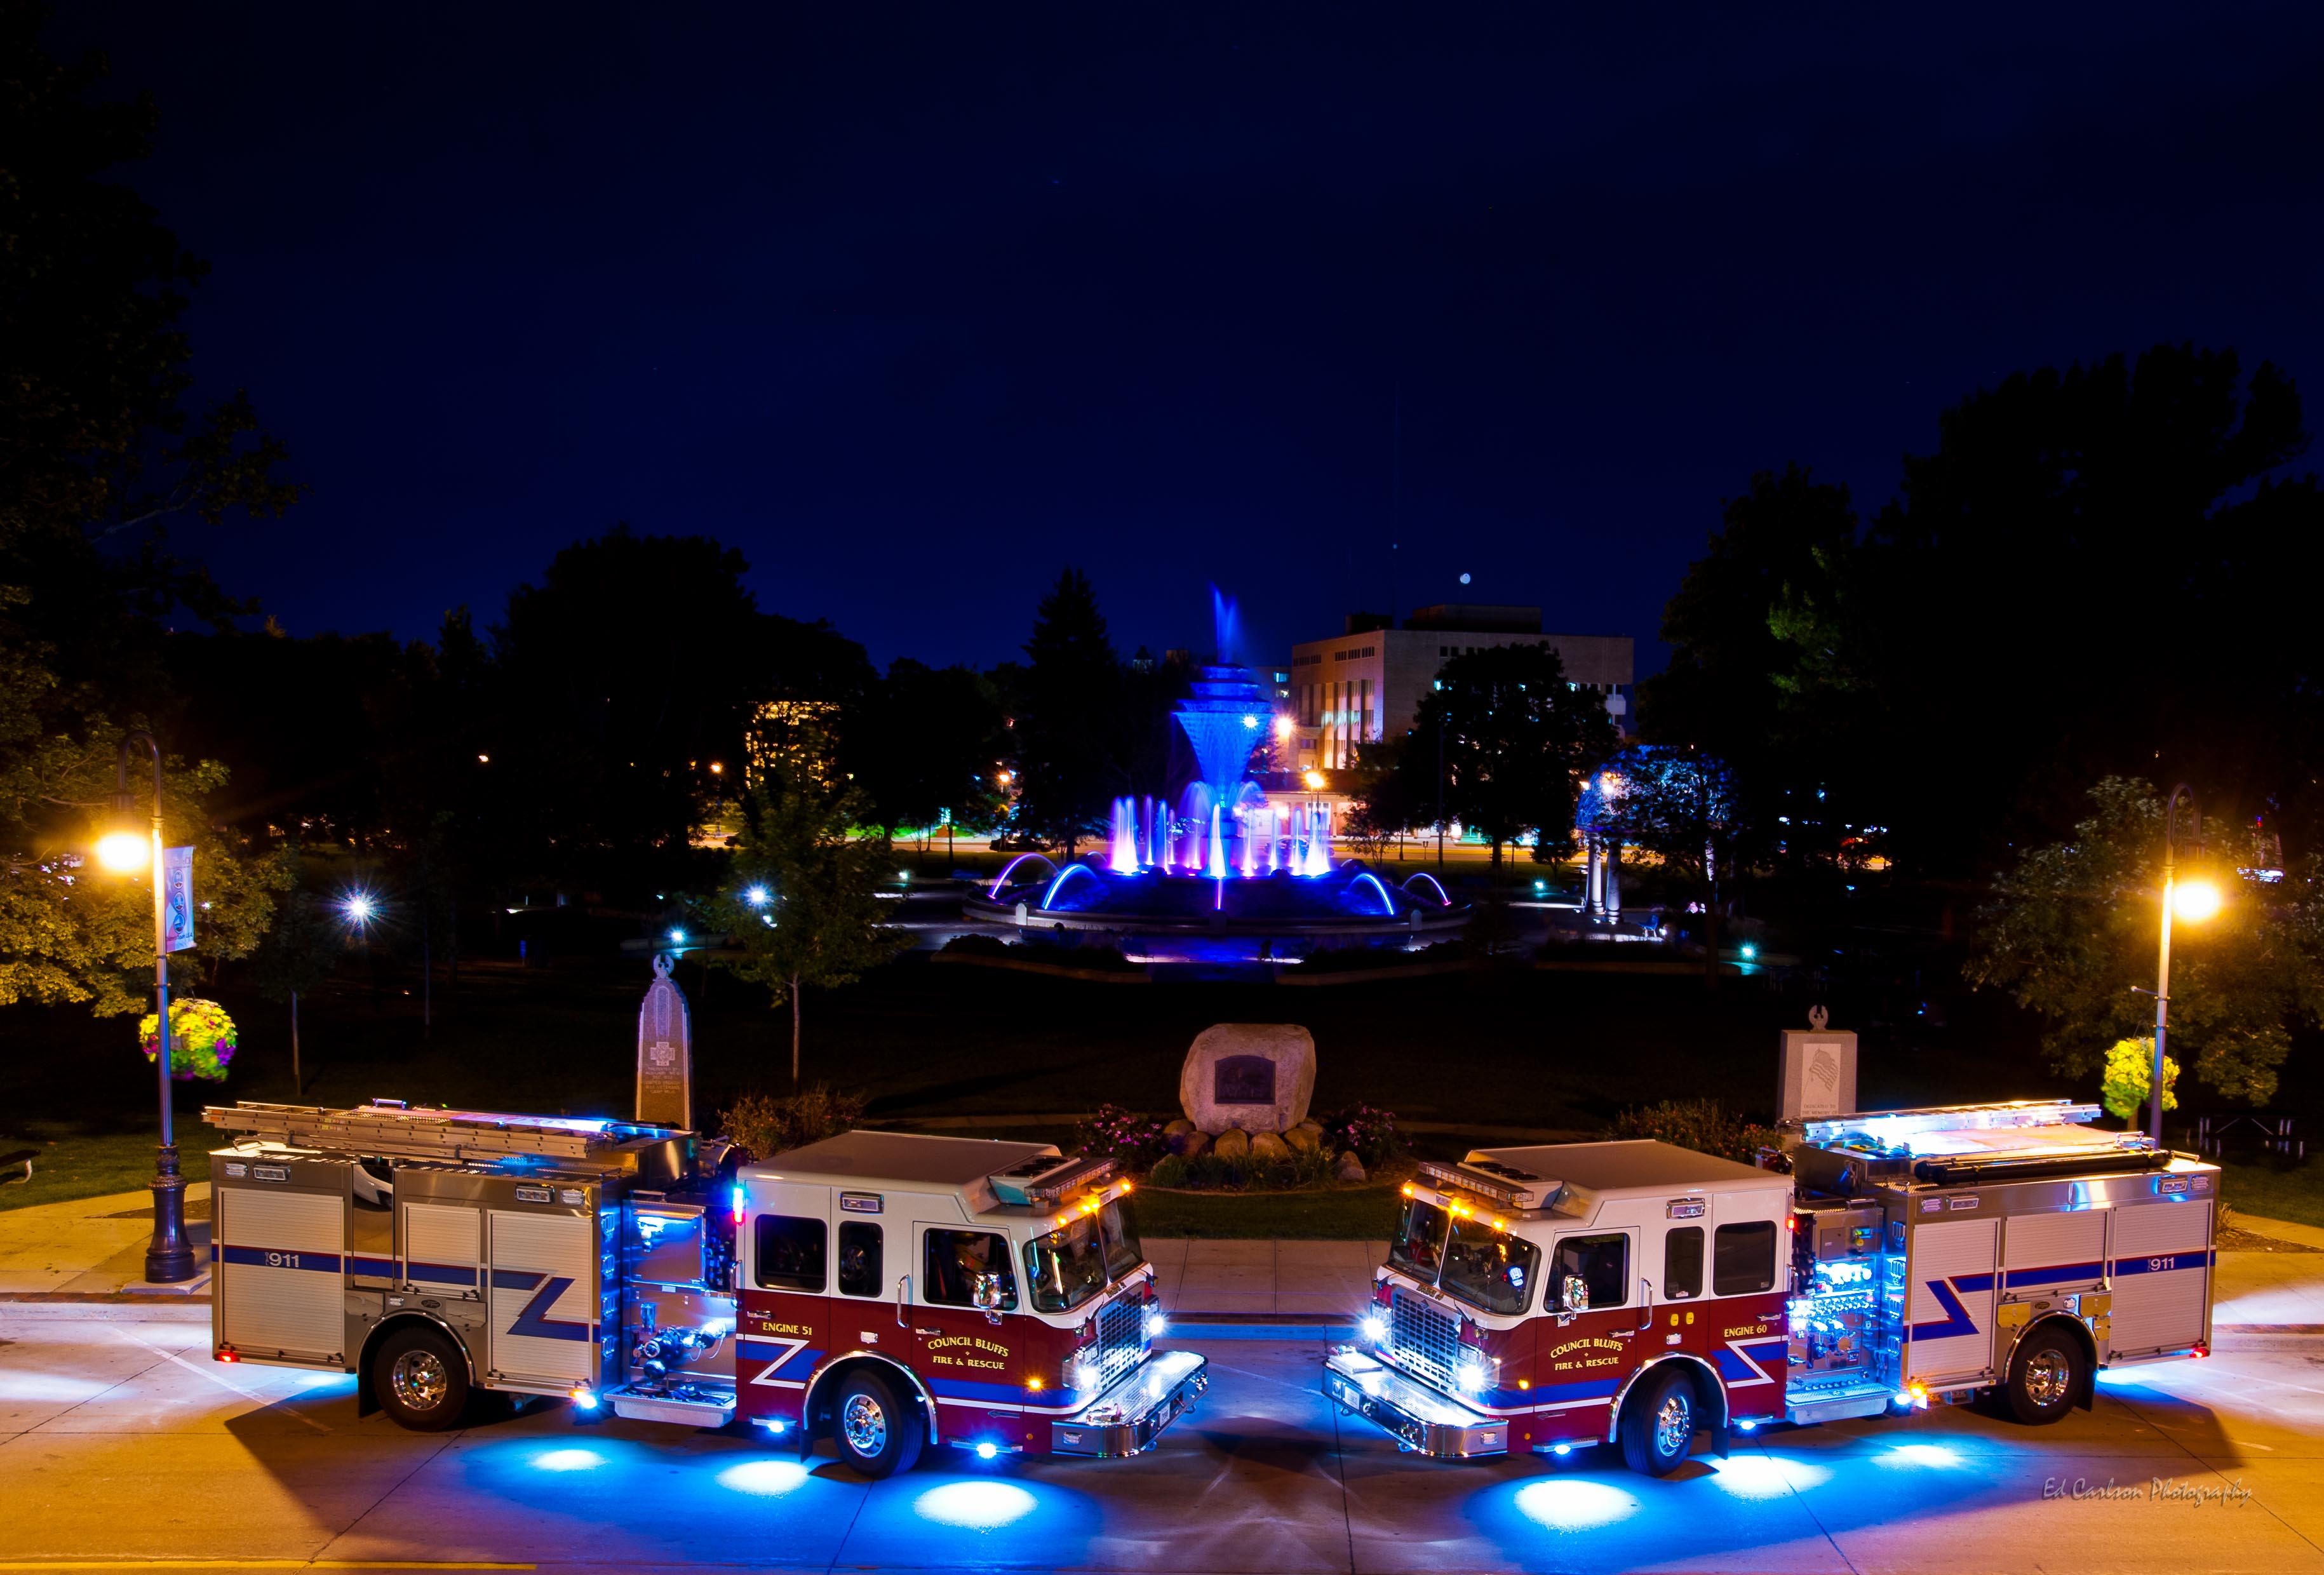 CB Fire Department Night Display